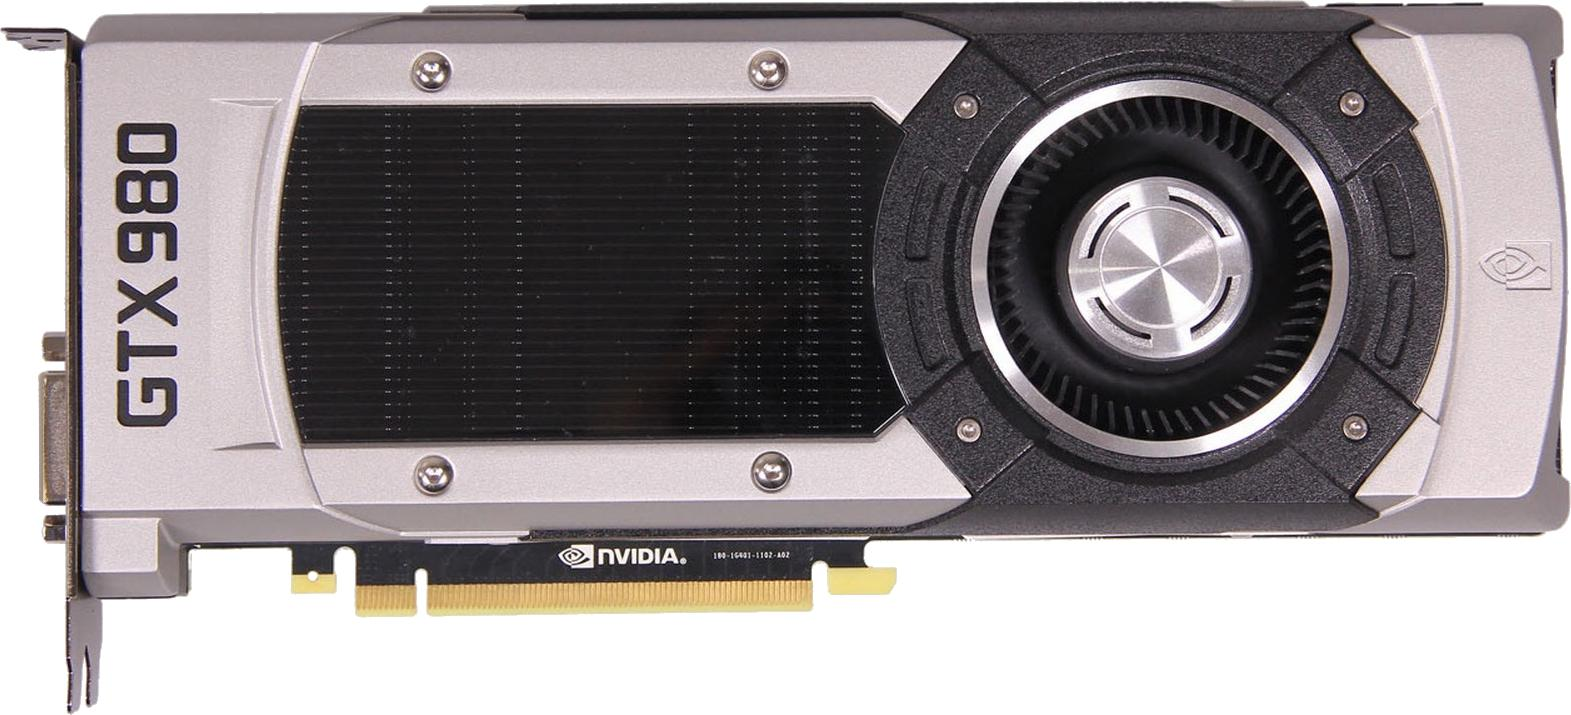 Palit GeForce GTX 980